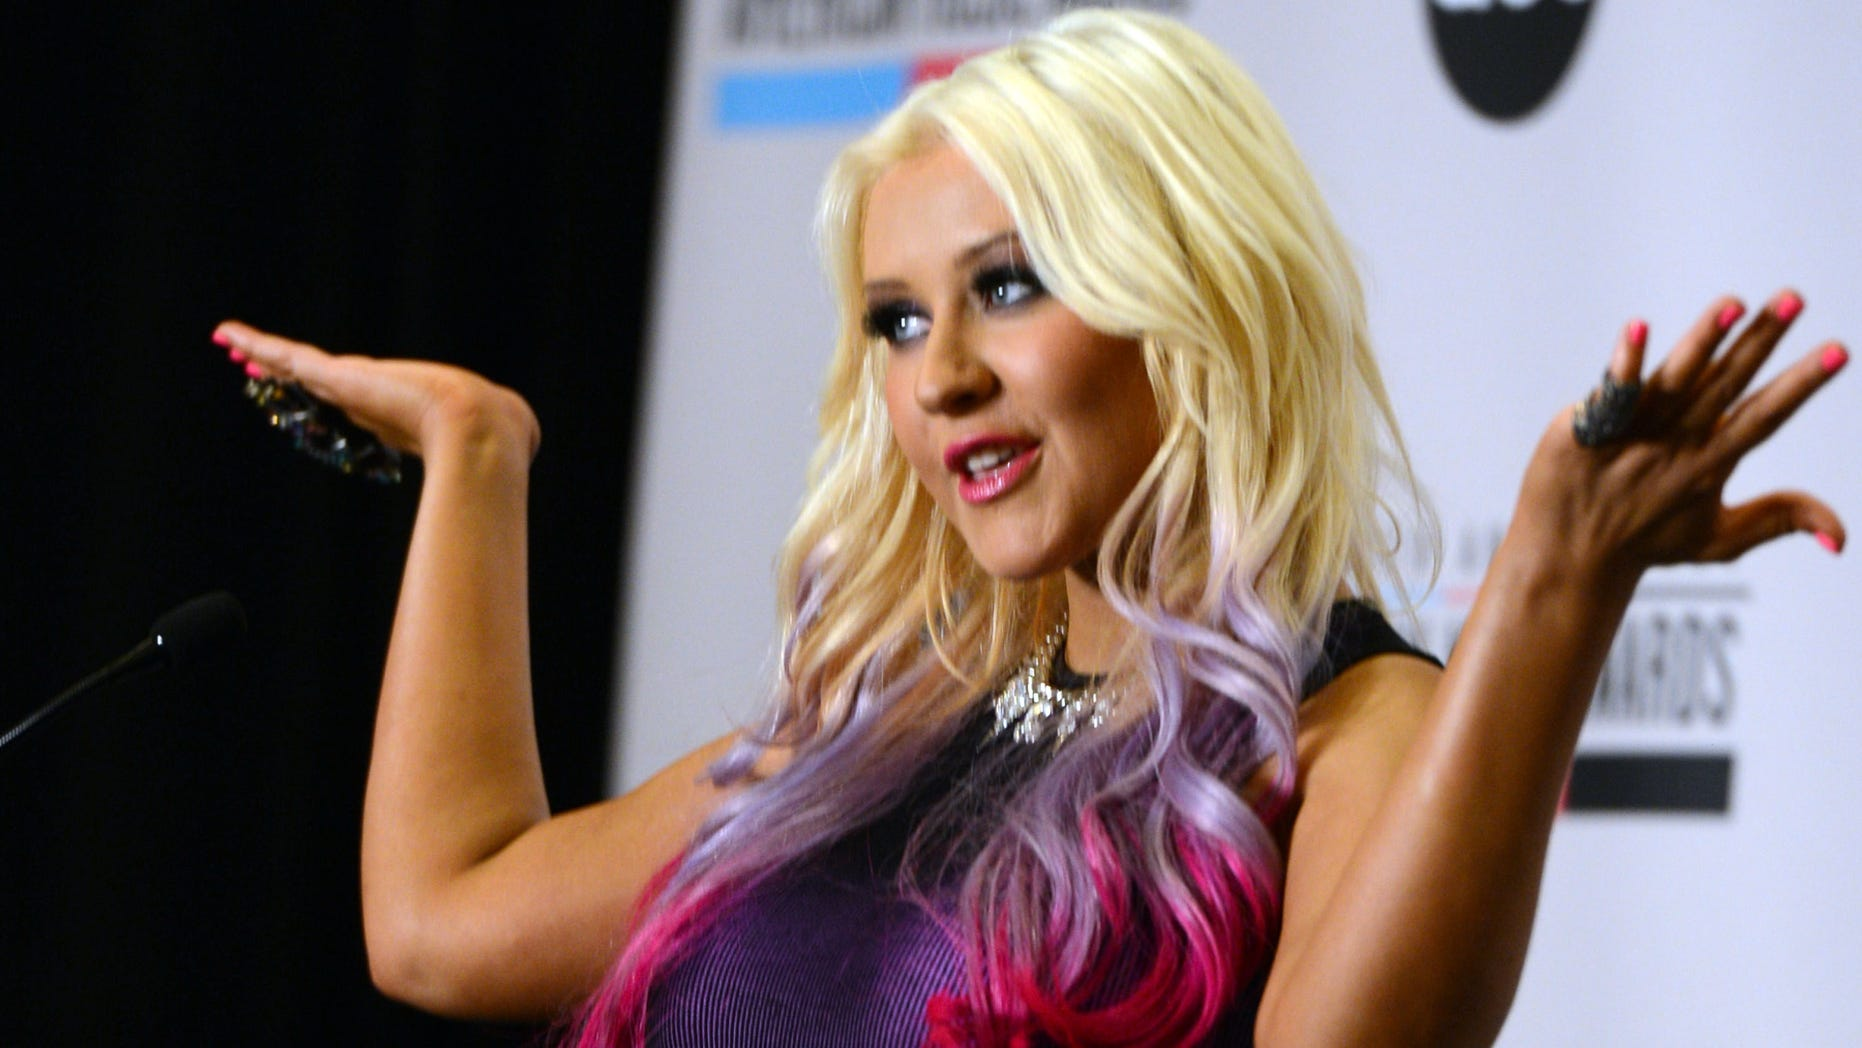 LOS ANGELES, CA - OCTOBER 09:  Singer Christina Aguilera speaks onstage during the 40th Anniversary American Music Awards nominations press conference at the JW Marriott Los Angeles at L.A. LIVE on October 9, 2012 in Los Angeles, California.  (Photo by Kevin Winter/Getty Images)